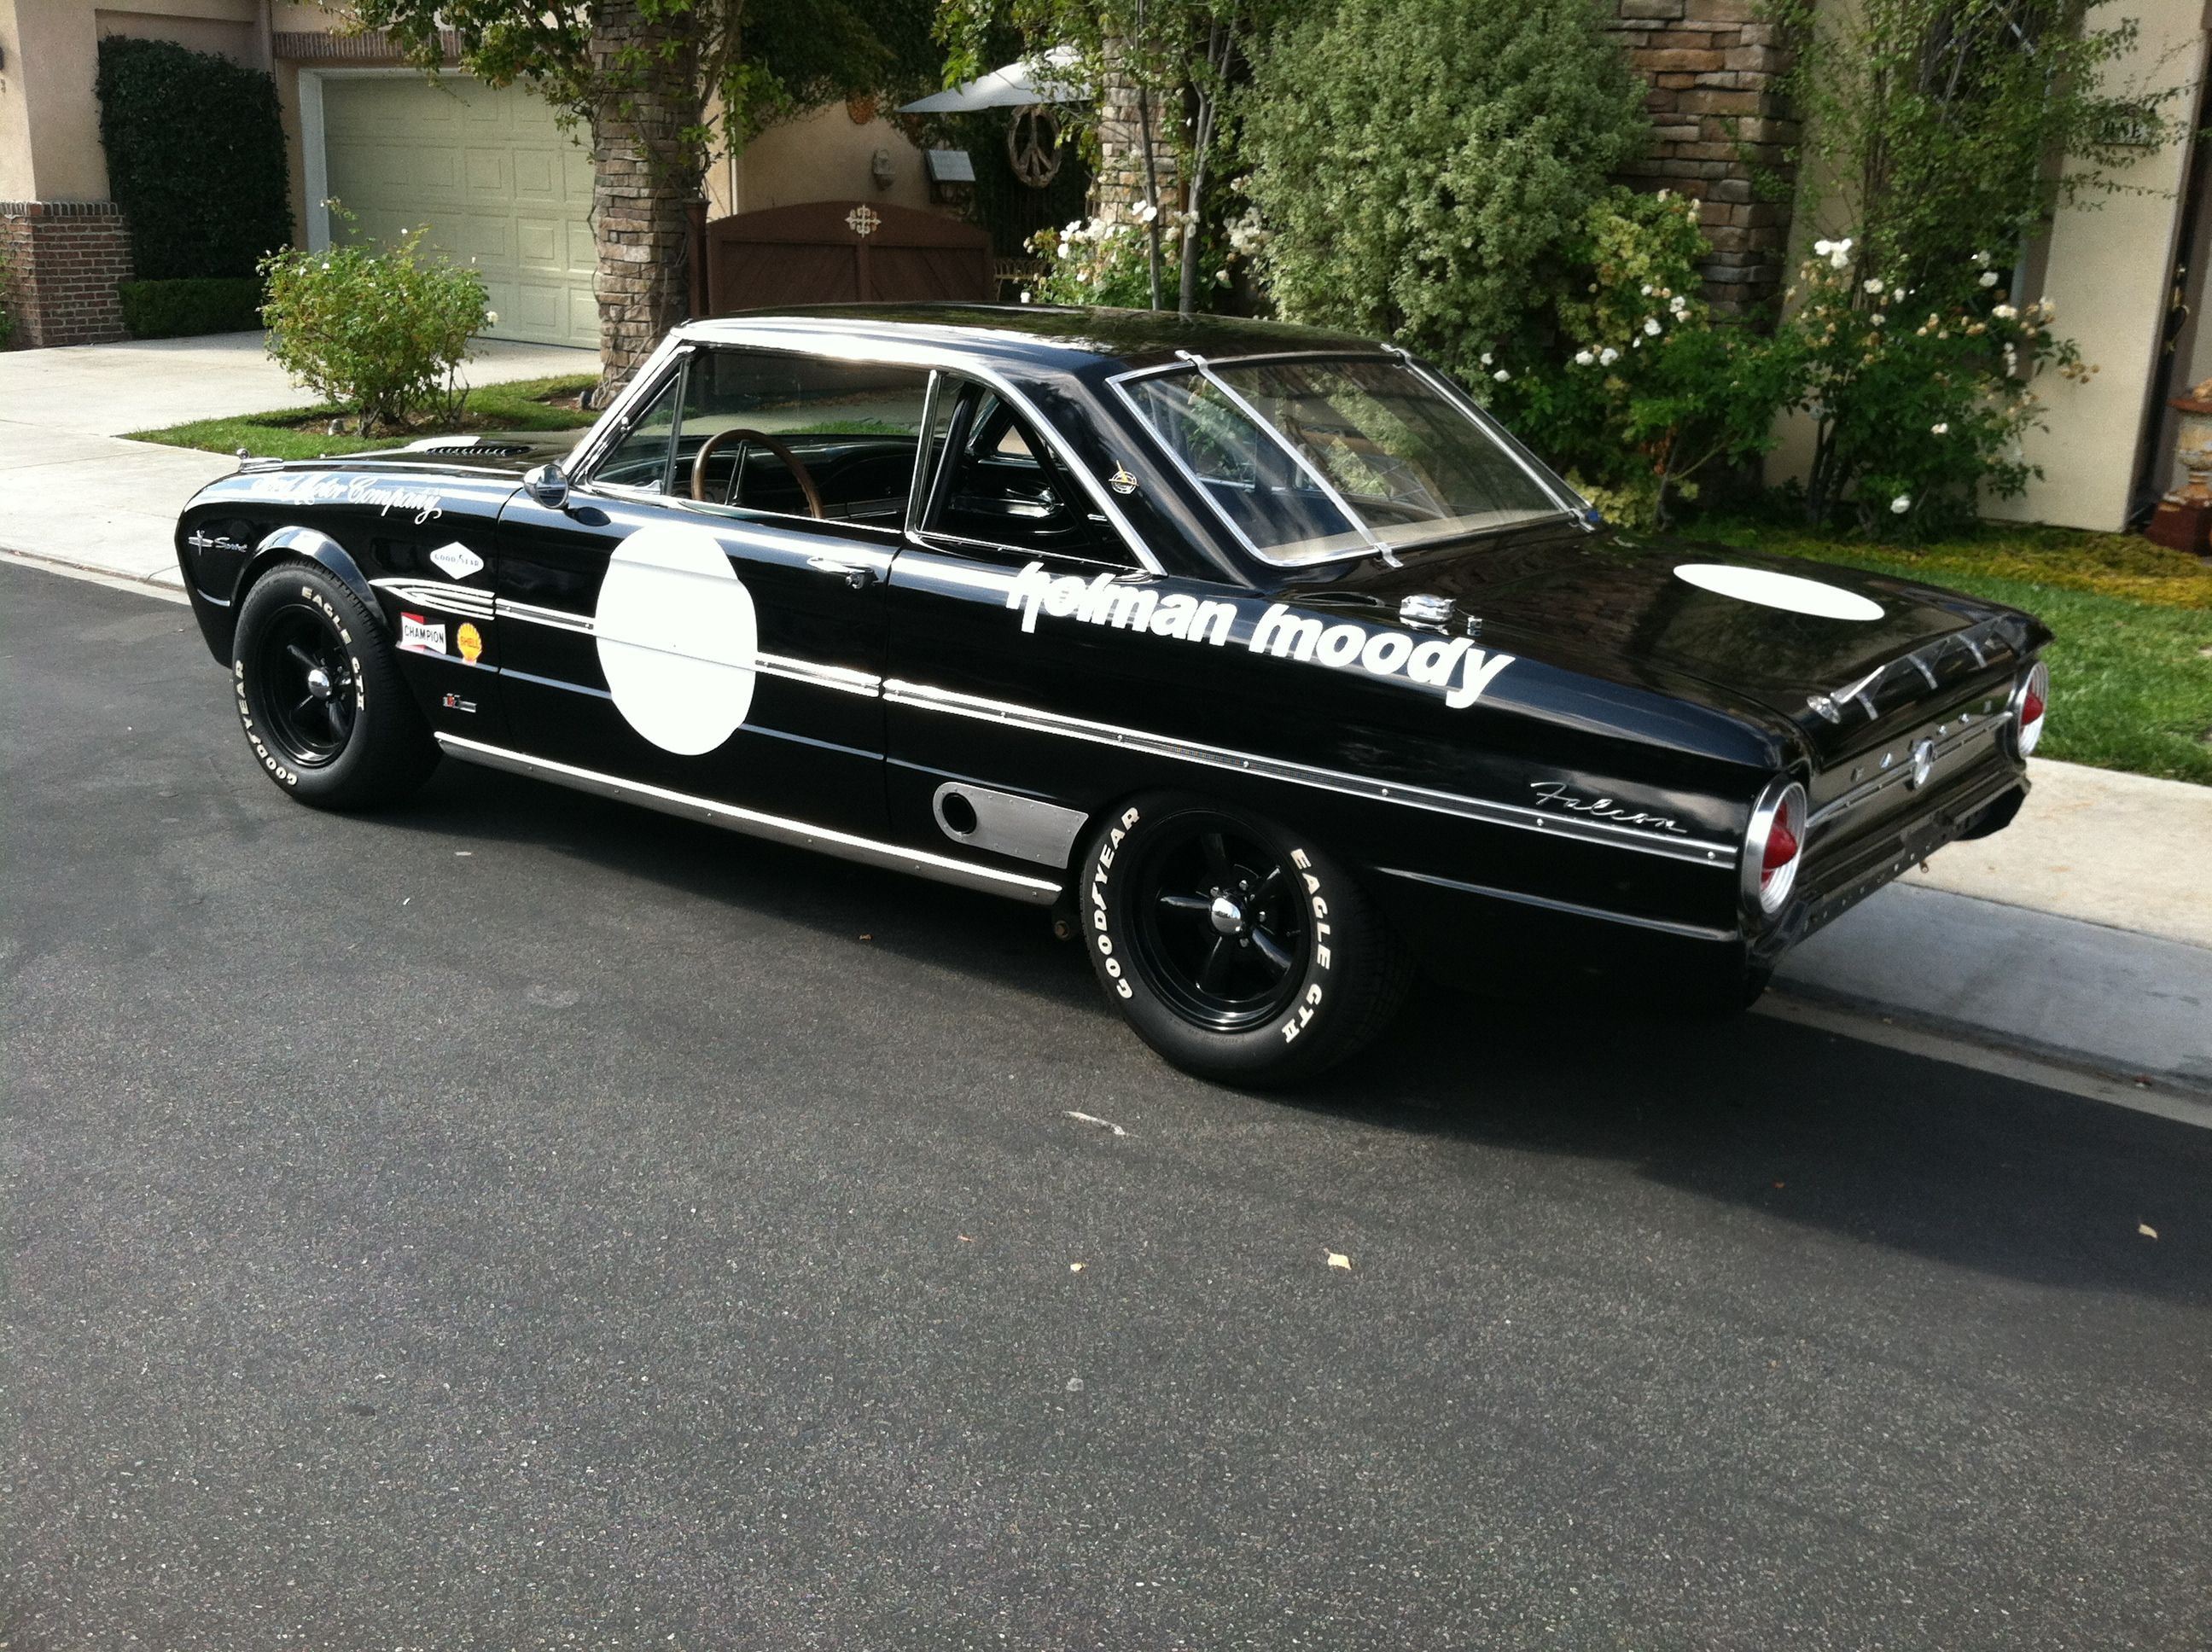 63 ford falcon sprint trans am racer k code hipo 289 4 speed we can build one for you www vinracer com